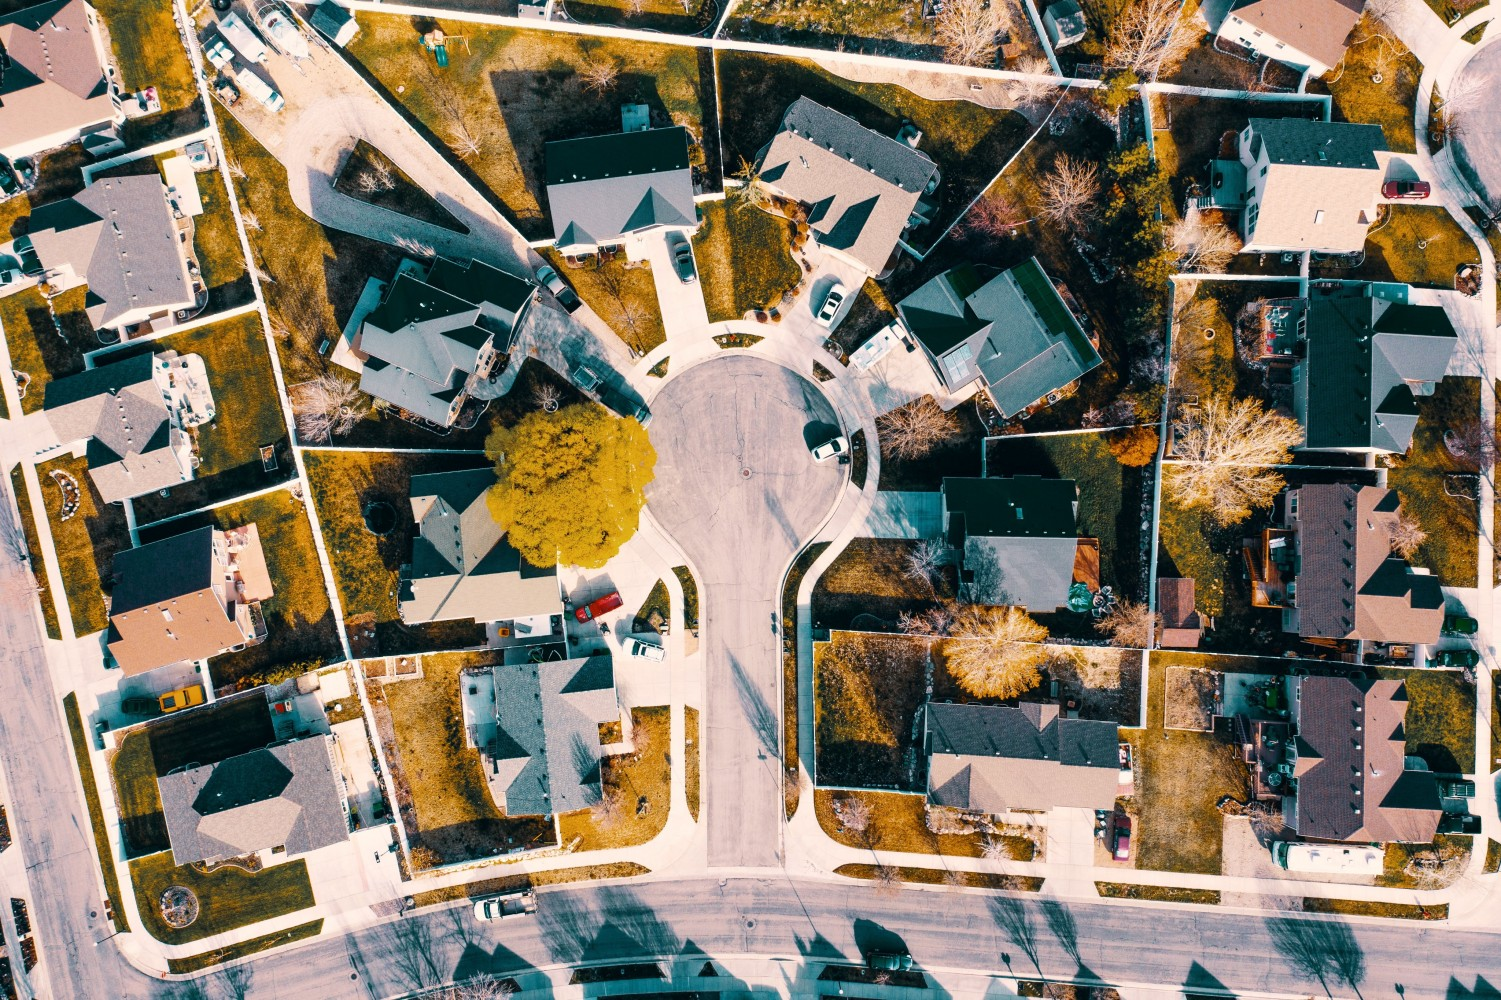 Ottawa provides $30M for 'severe' housing needs in Peel ahead of winter